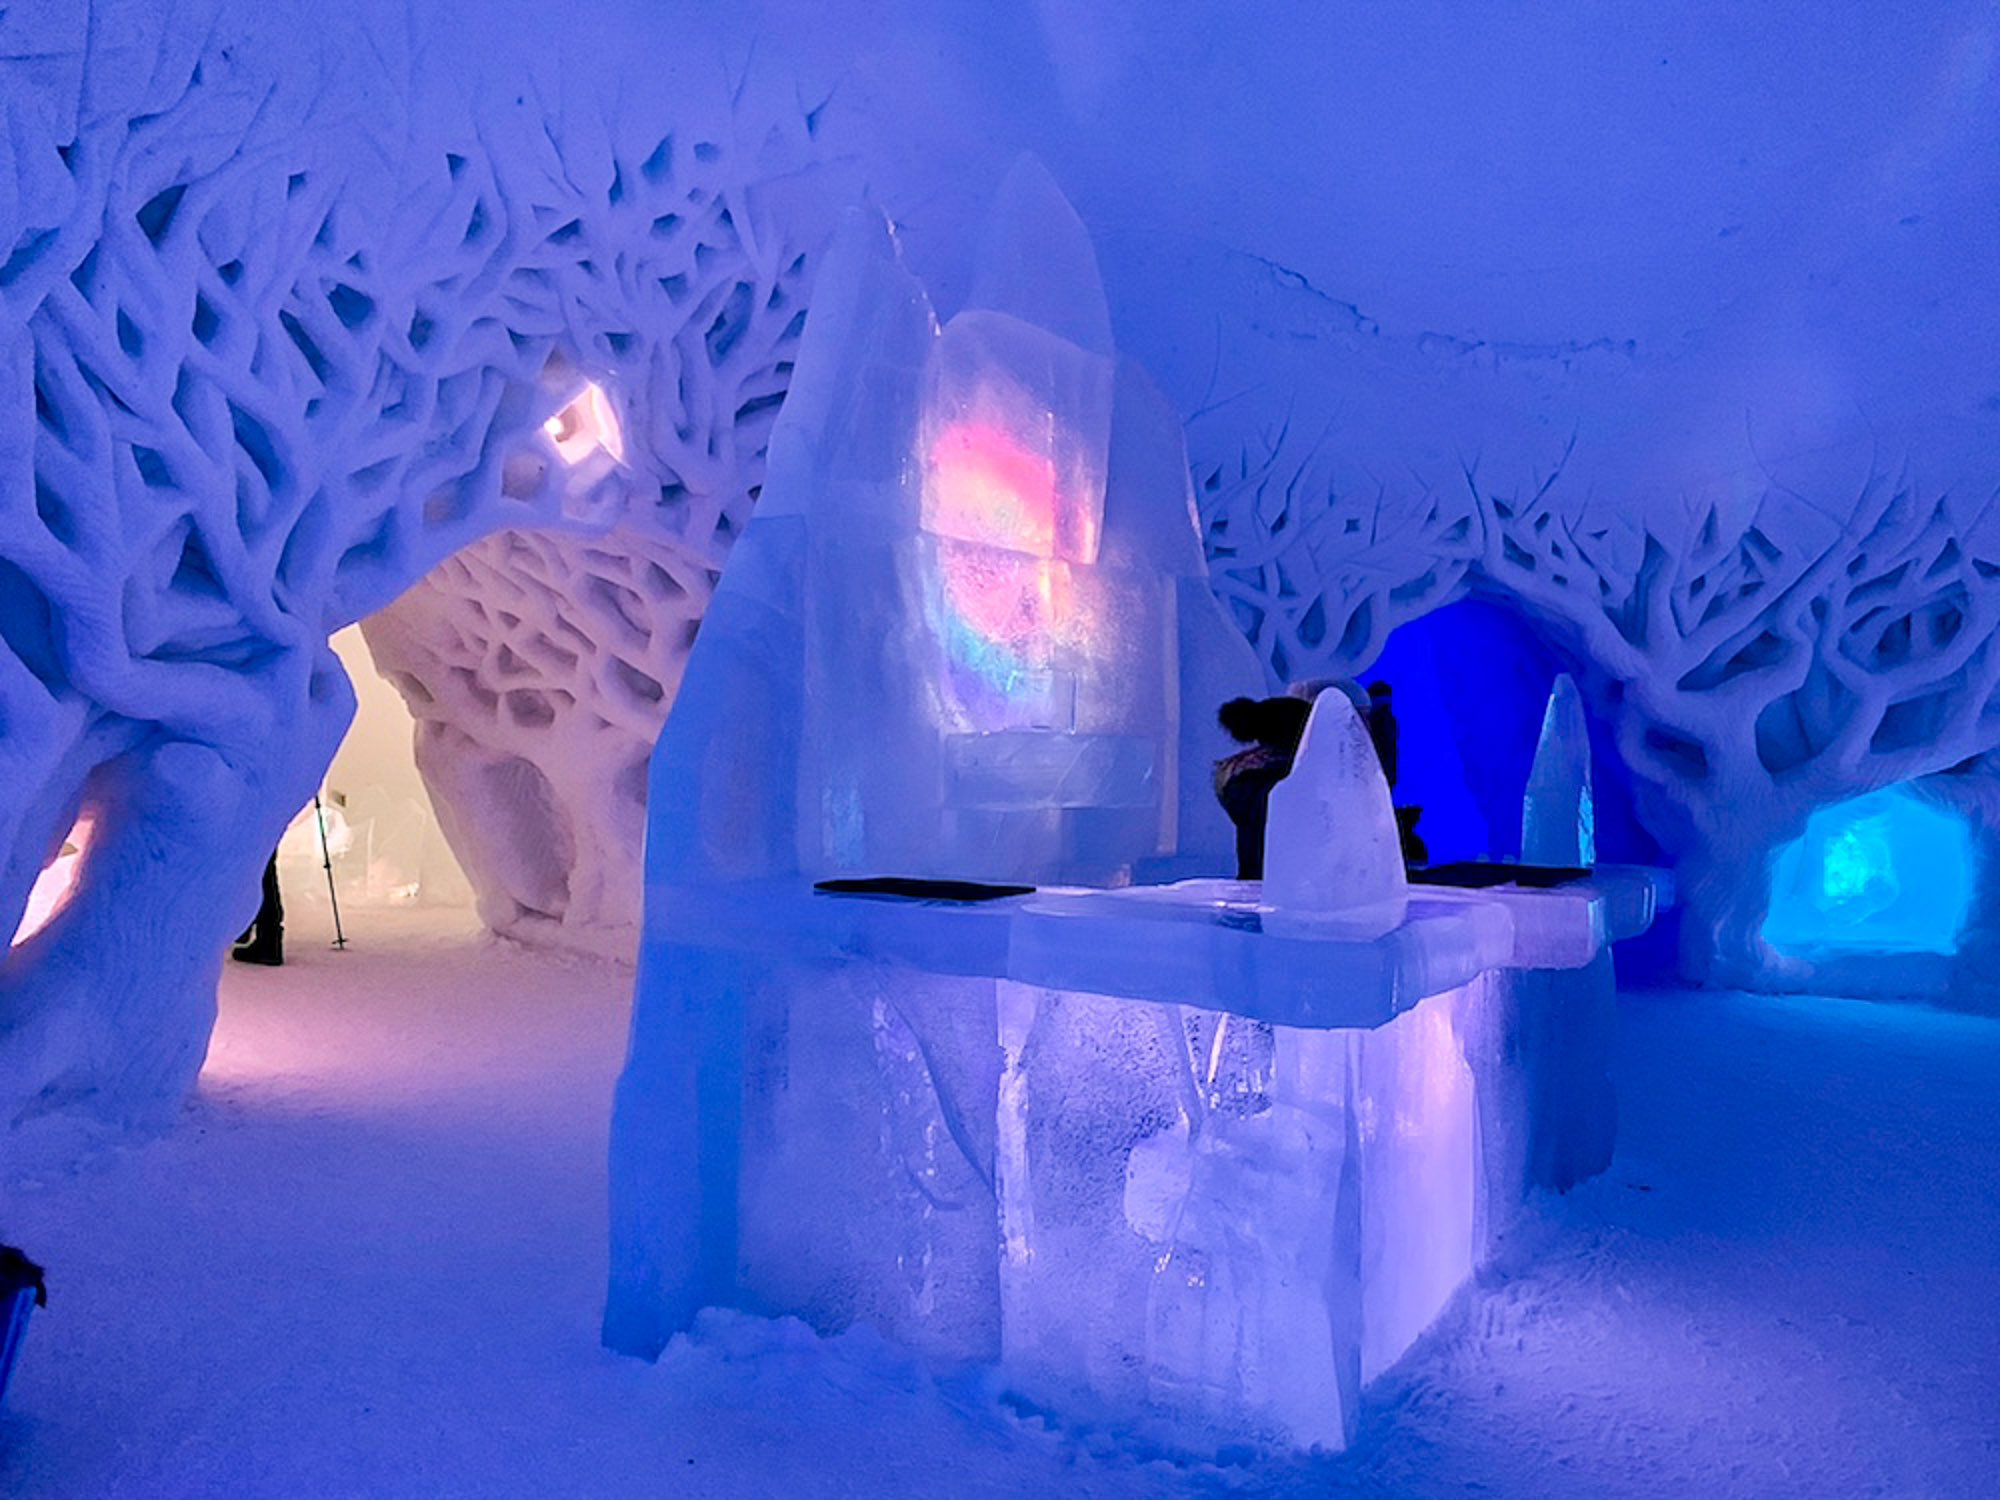 Tromso Ice Domes, family friendly ice hotels